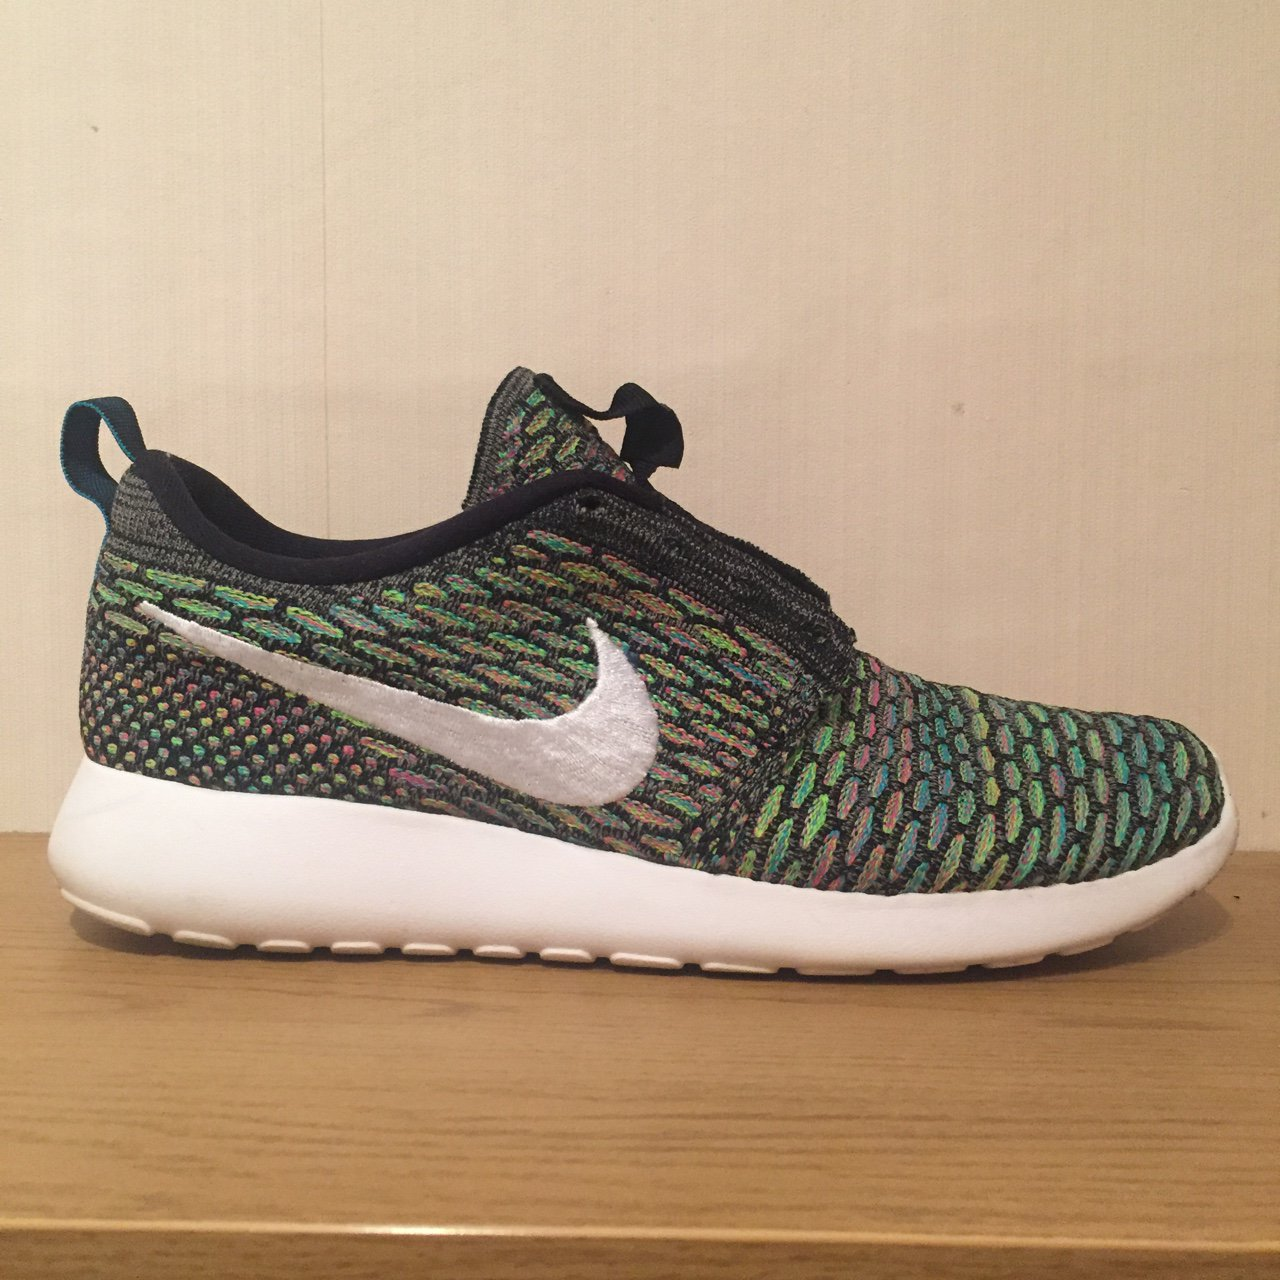 official photos a2fe2 3ebf5 Nike Roshe Run Flyknit multicolour, size 7. In decent just - Depop